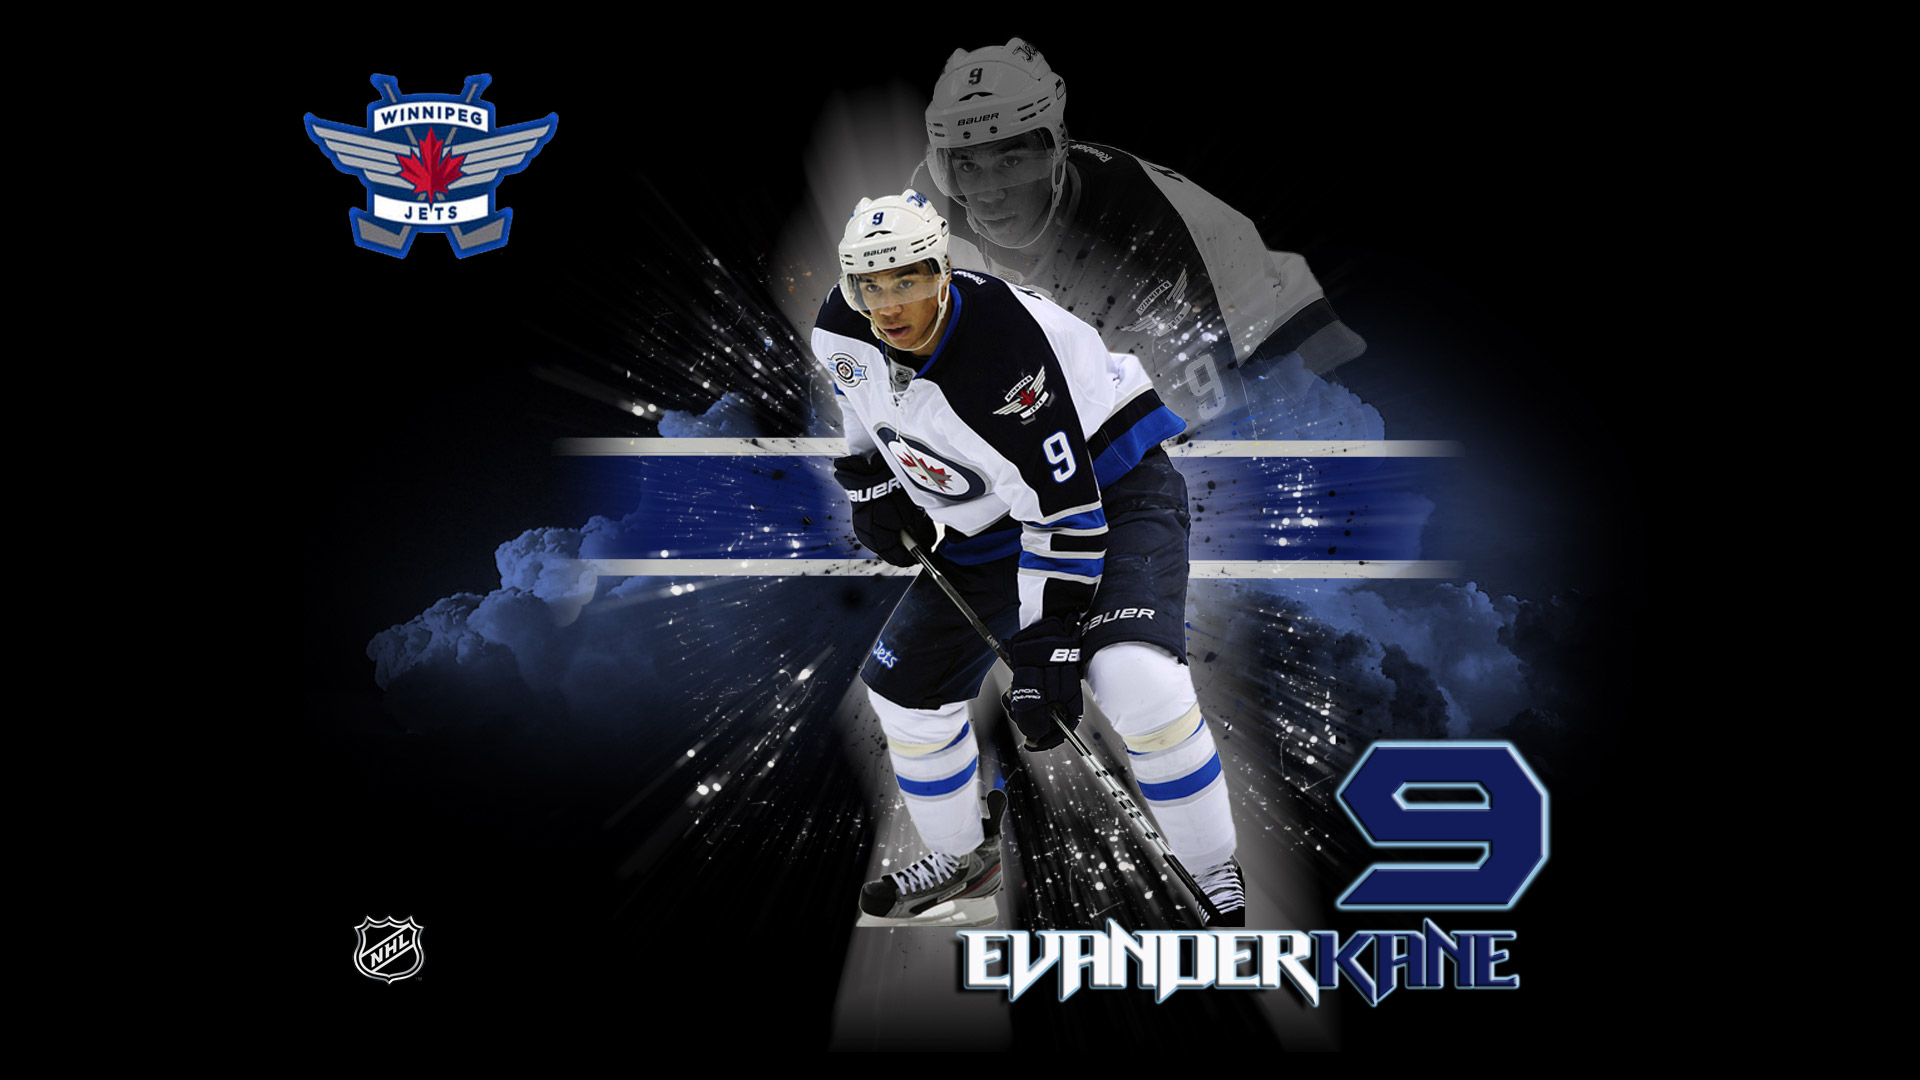 NHL Wallpapers   Evander Kane Winnipeg Jets 1920x1080 wallpaper 1920x1080